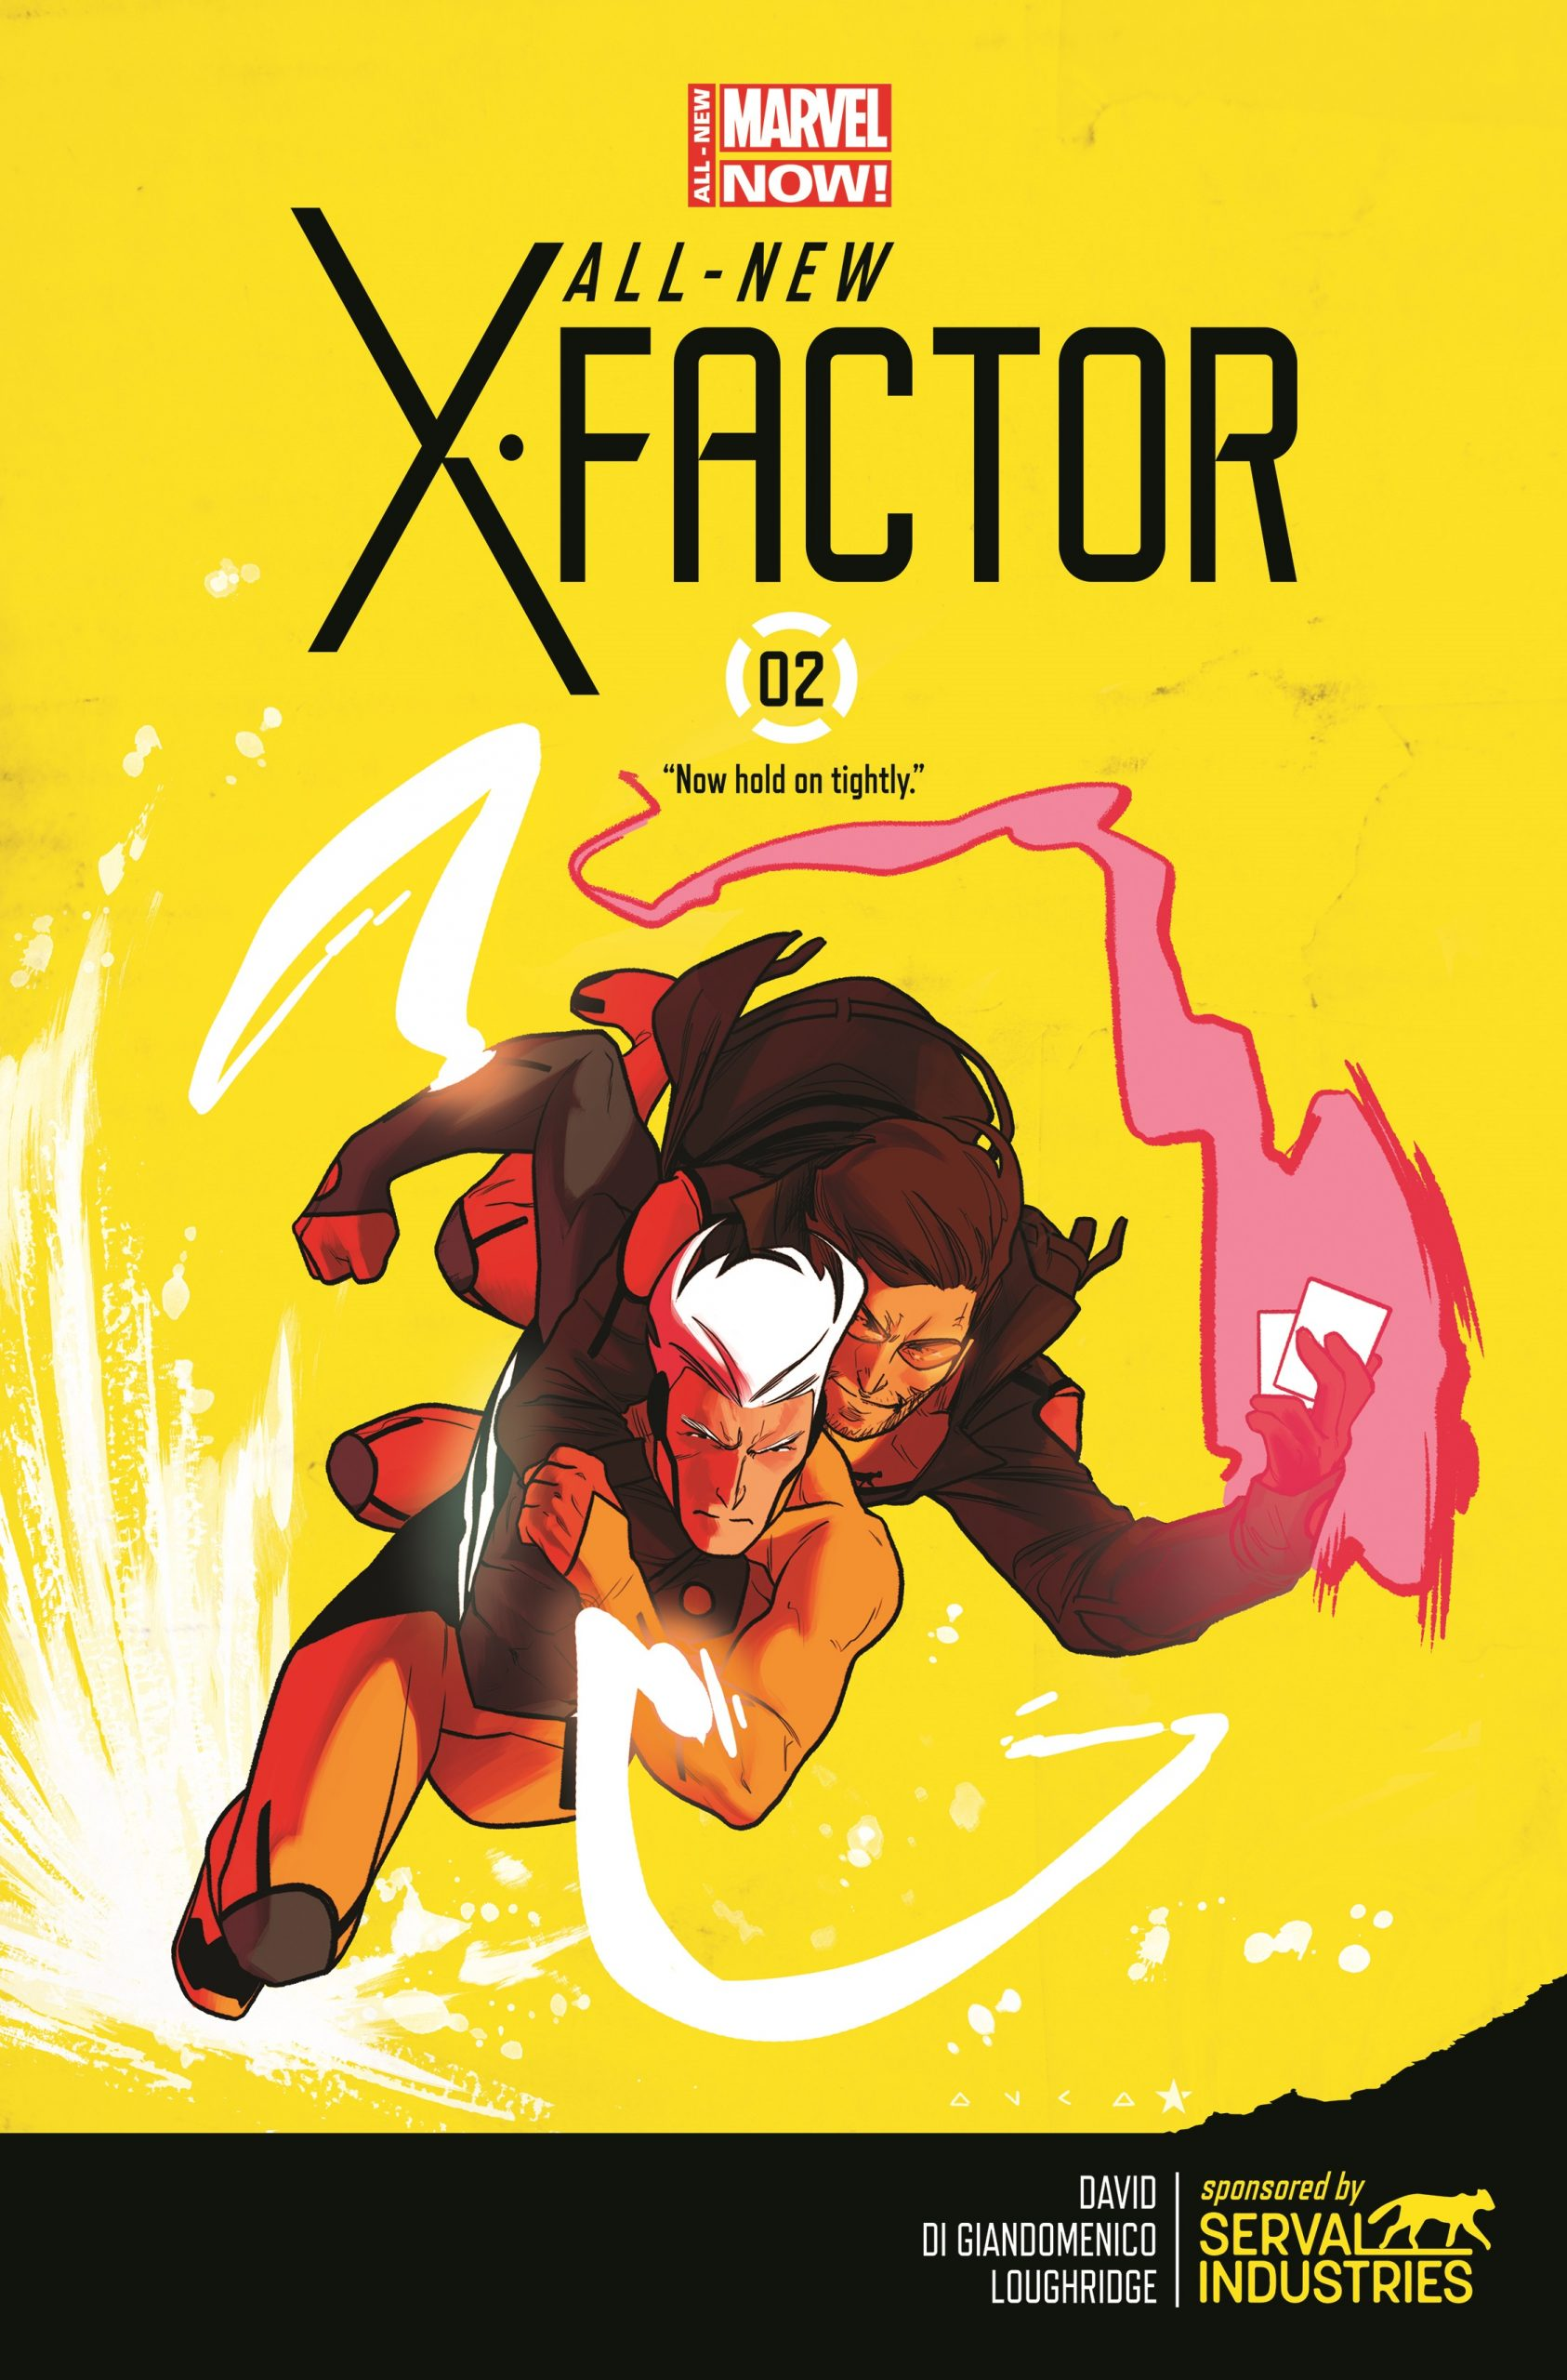 All-New_X-Factor_2_Cover.jpg